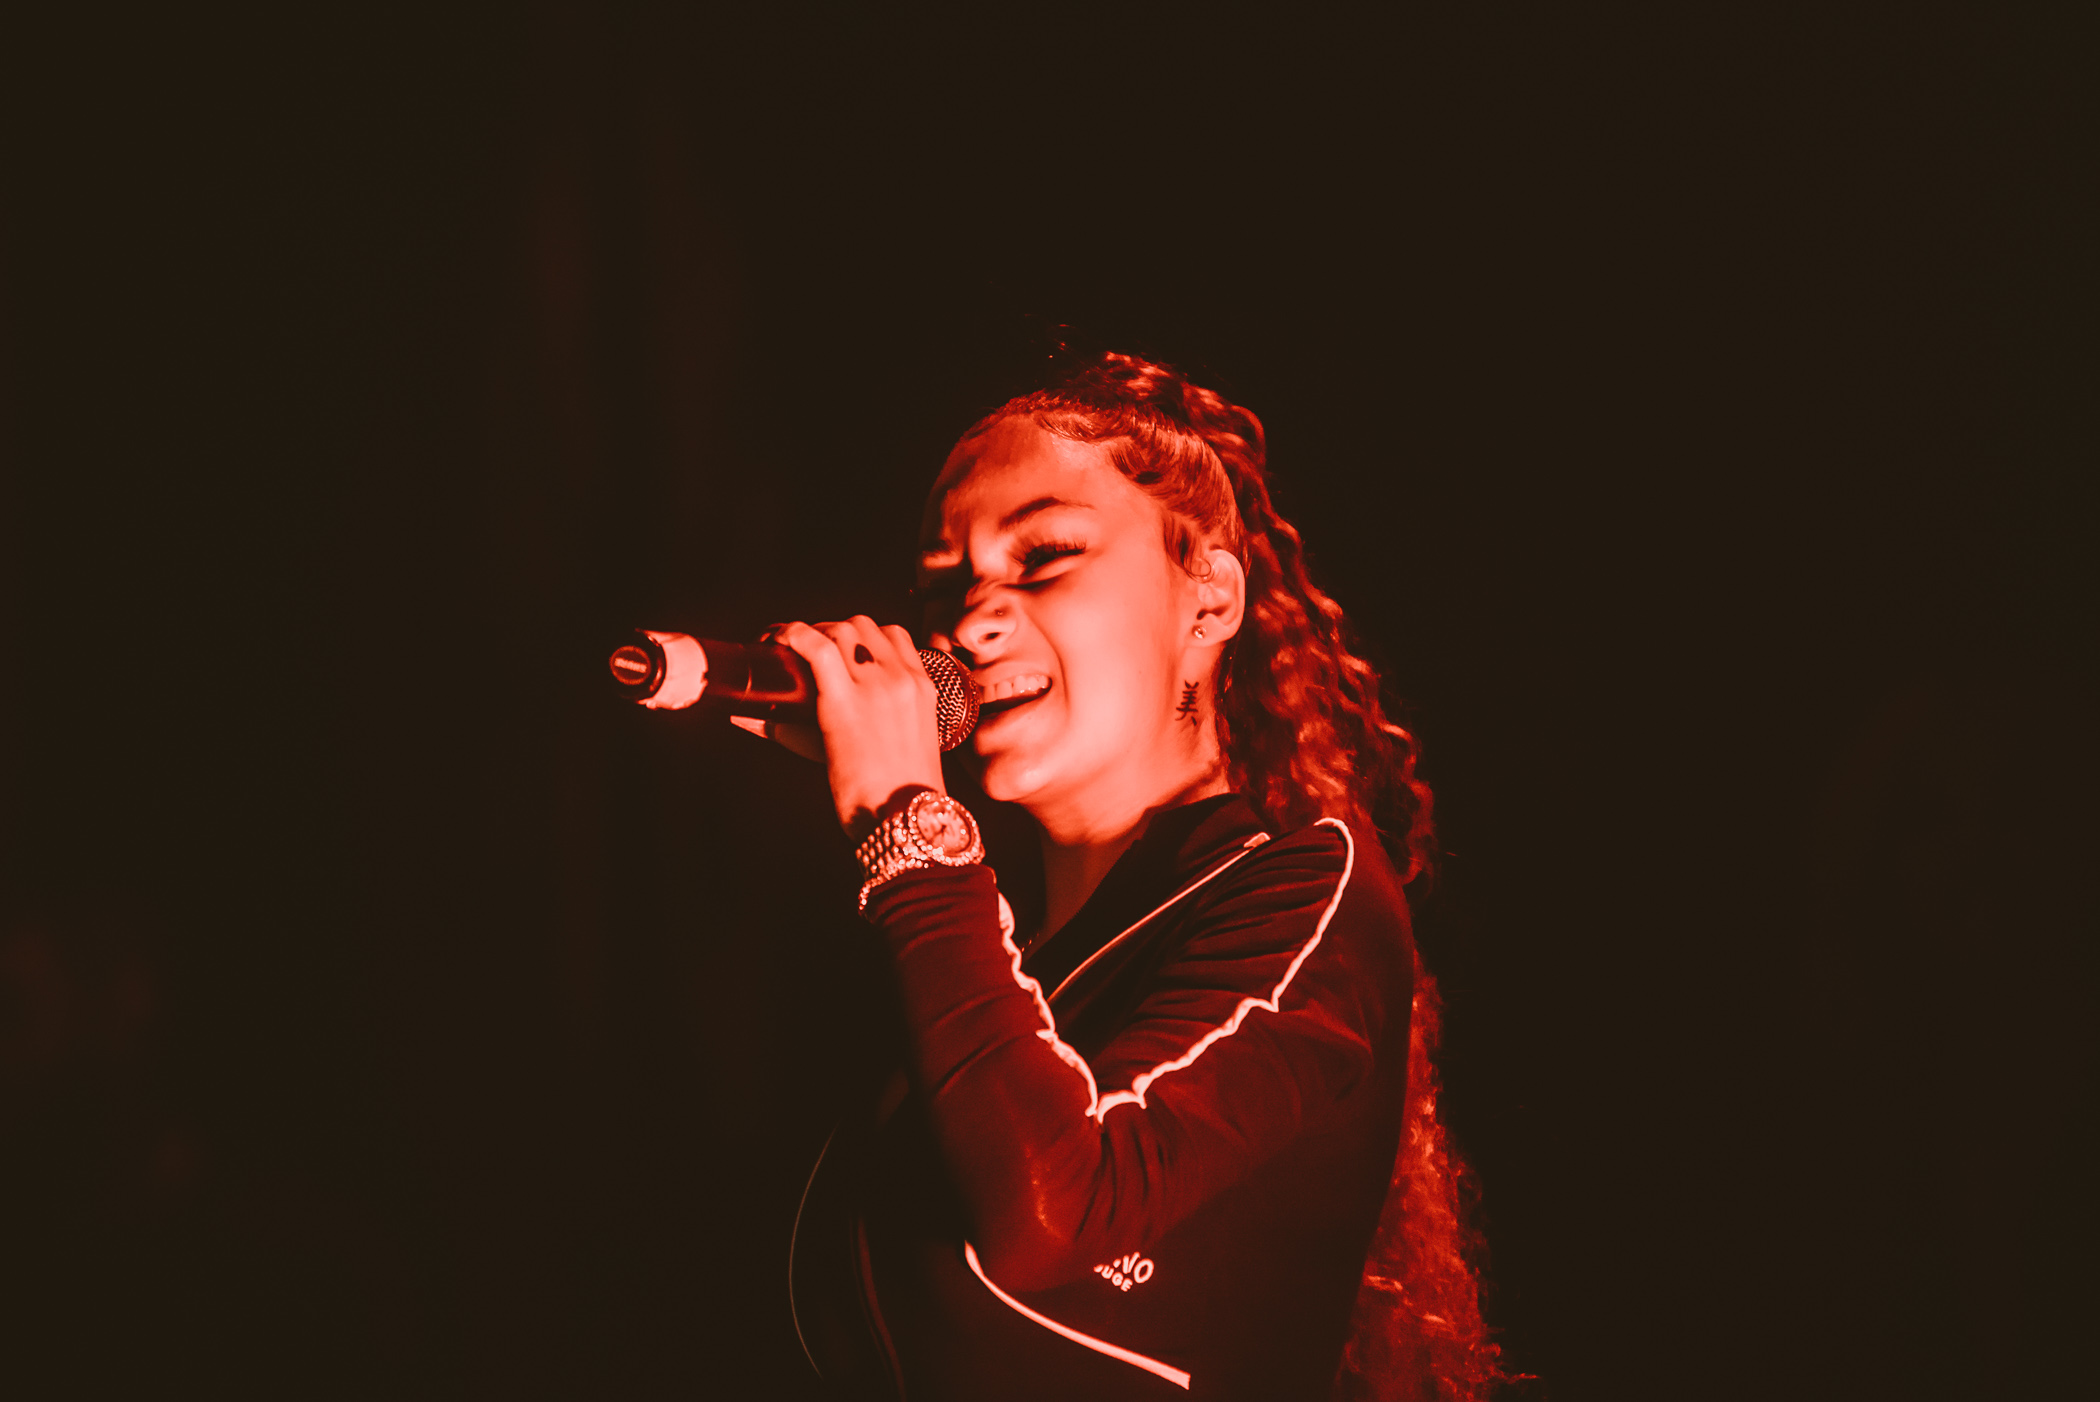 1_Bhad_Bhabie-VENUE-Timothy_Nguyen-20190510 (8 of 45).JPG